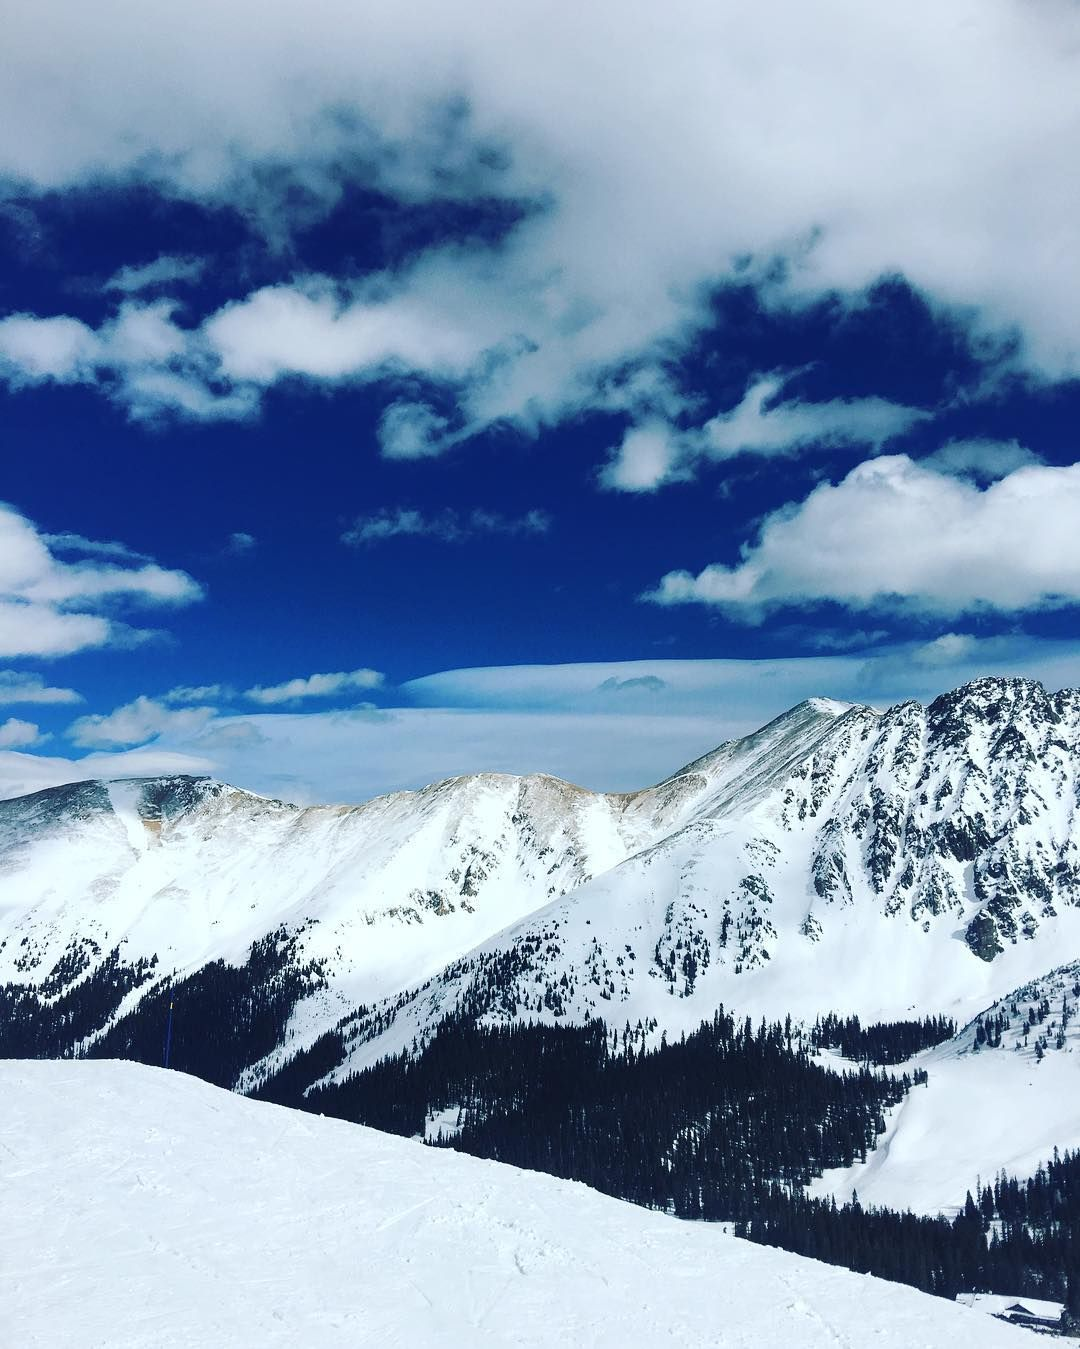 From high atop #Arapahoe Basin on a warm bluebird day with another foot of #snow on the way!